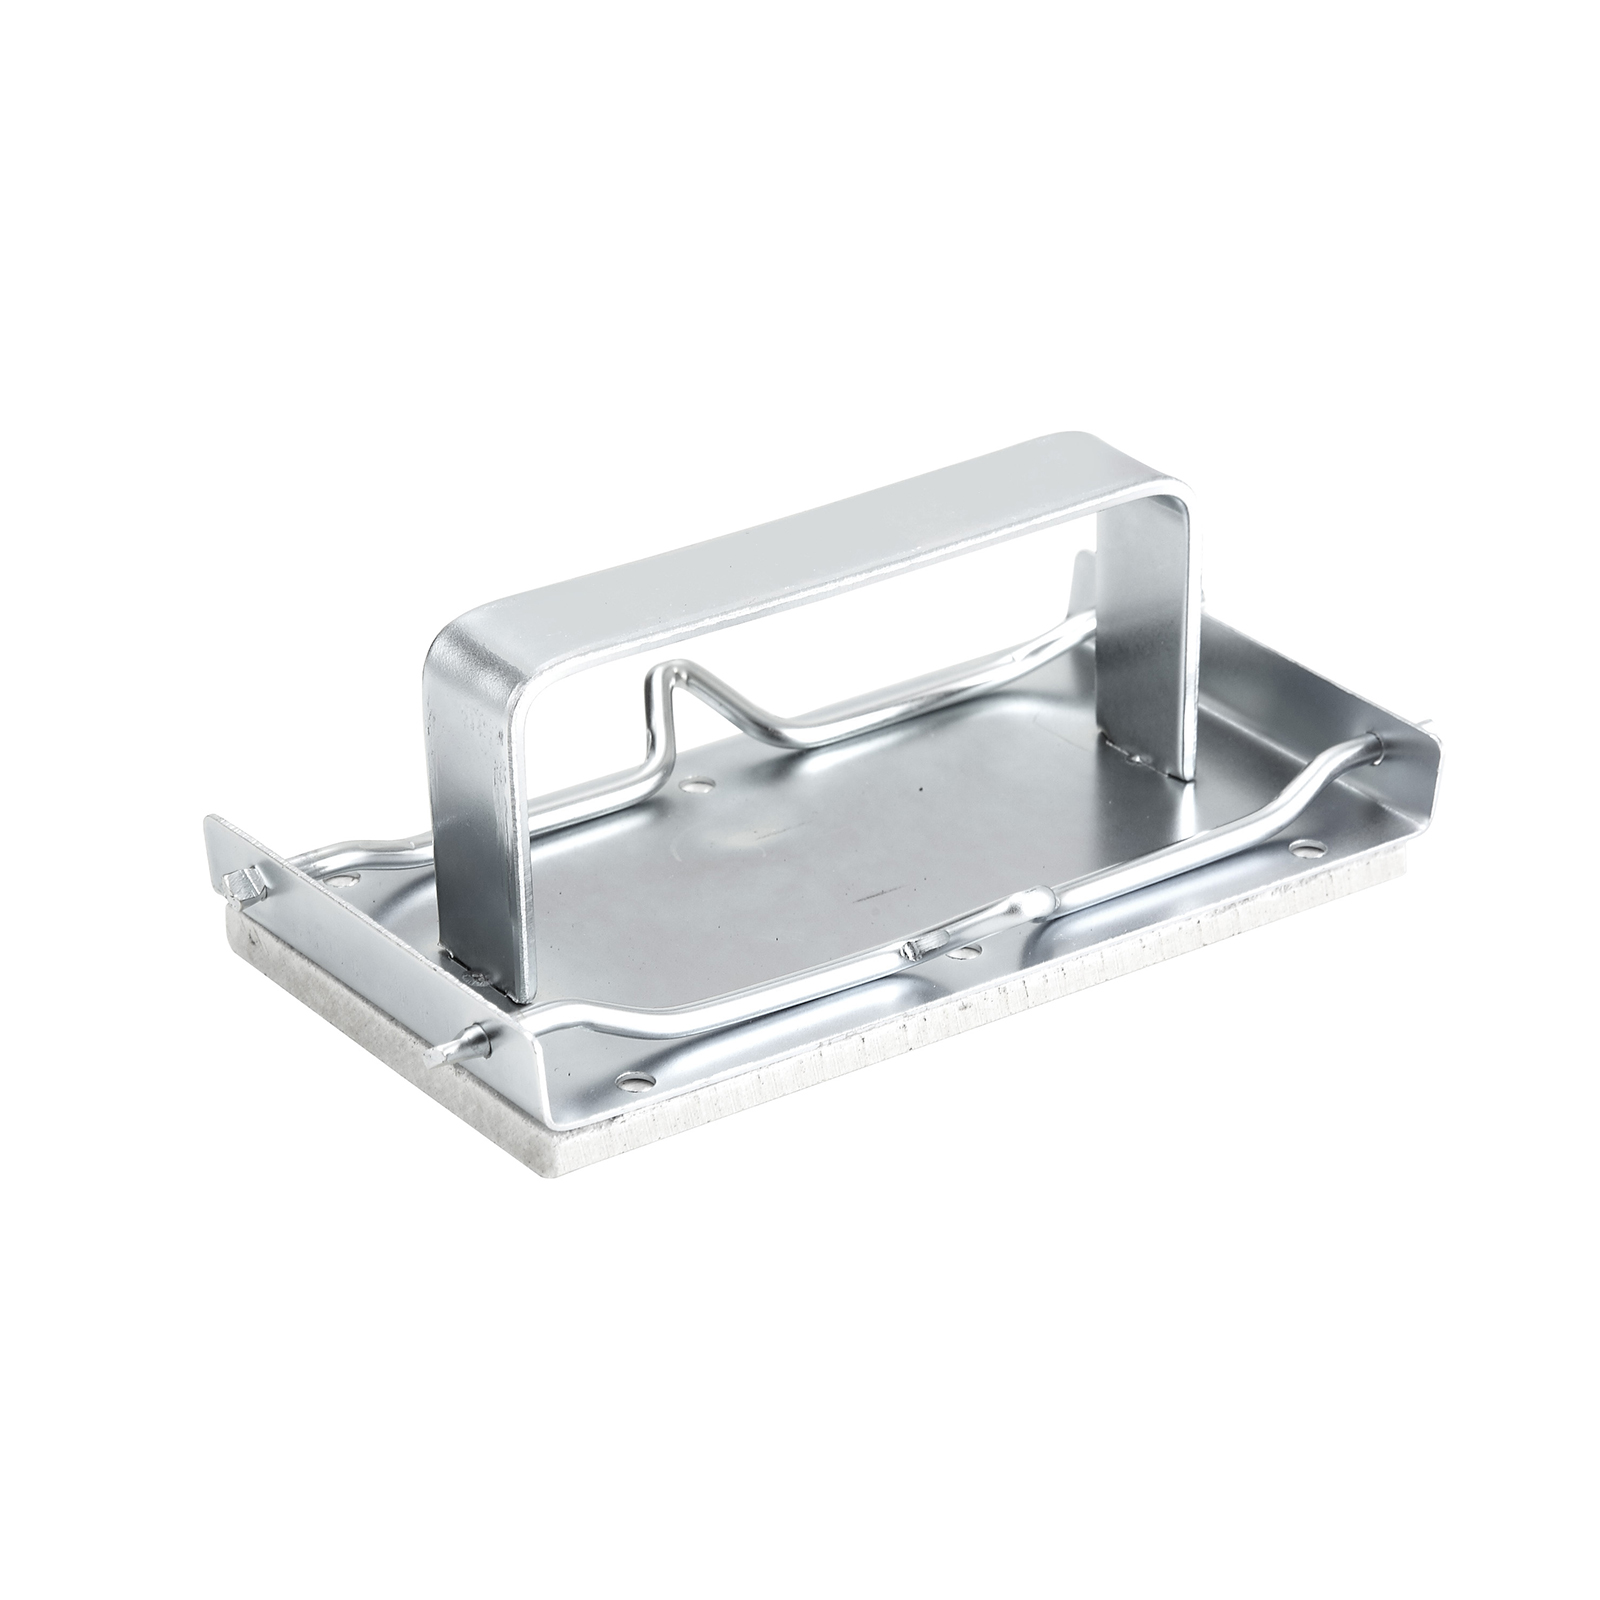 2920-26 Winco GSH-1 griddle screen/pad holder